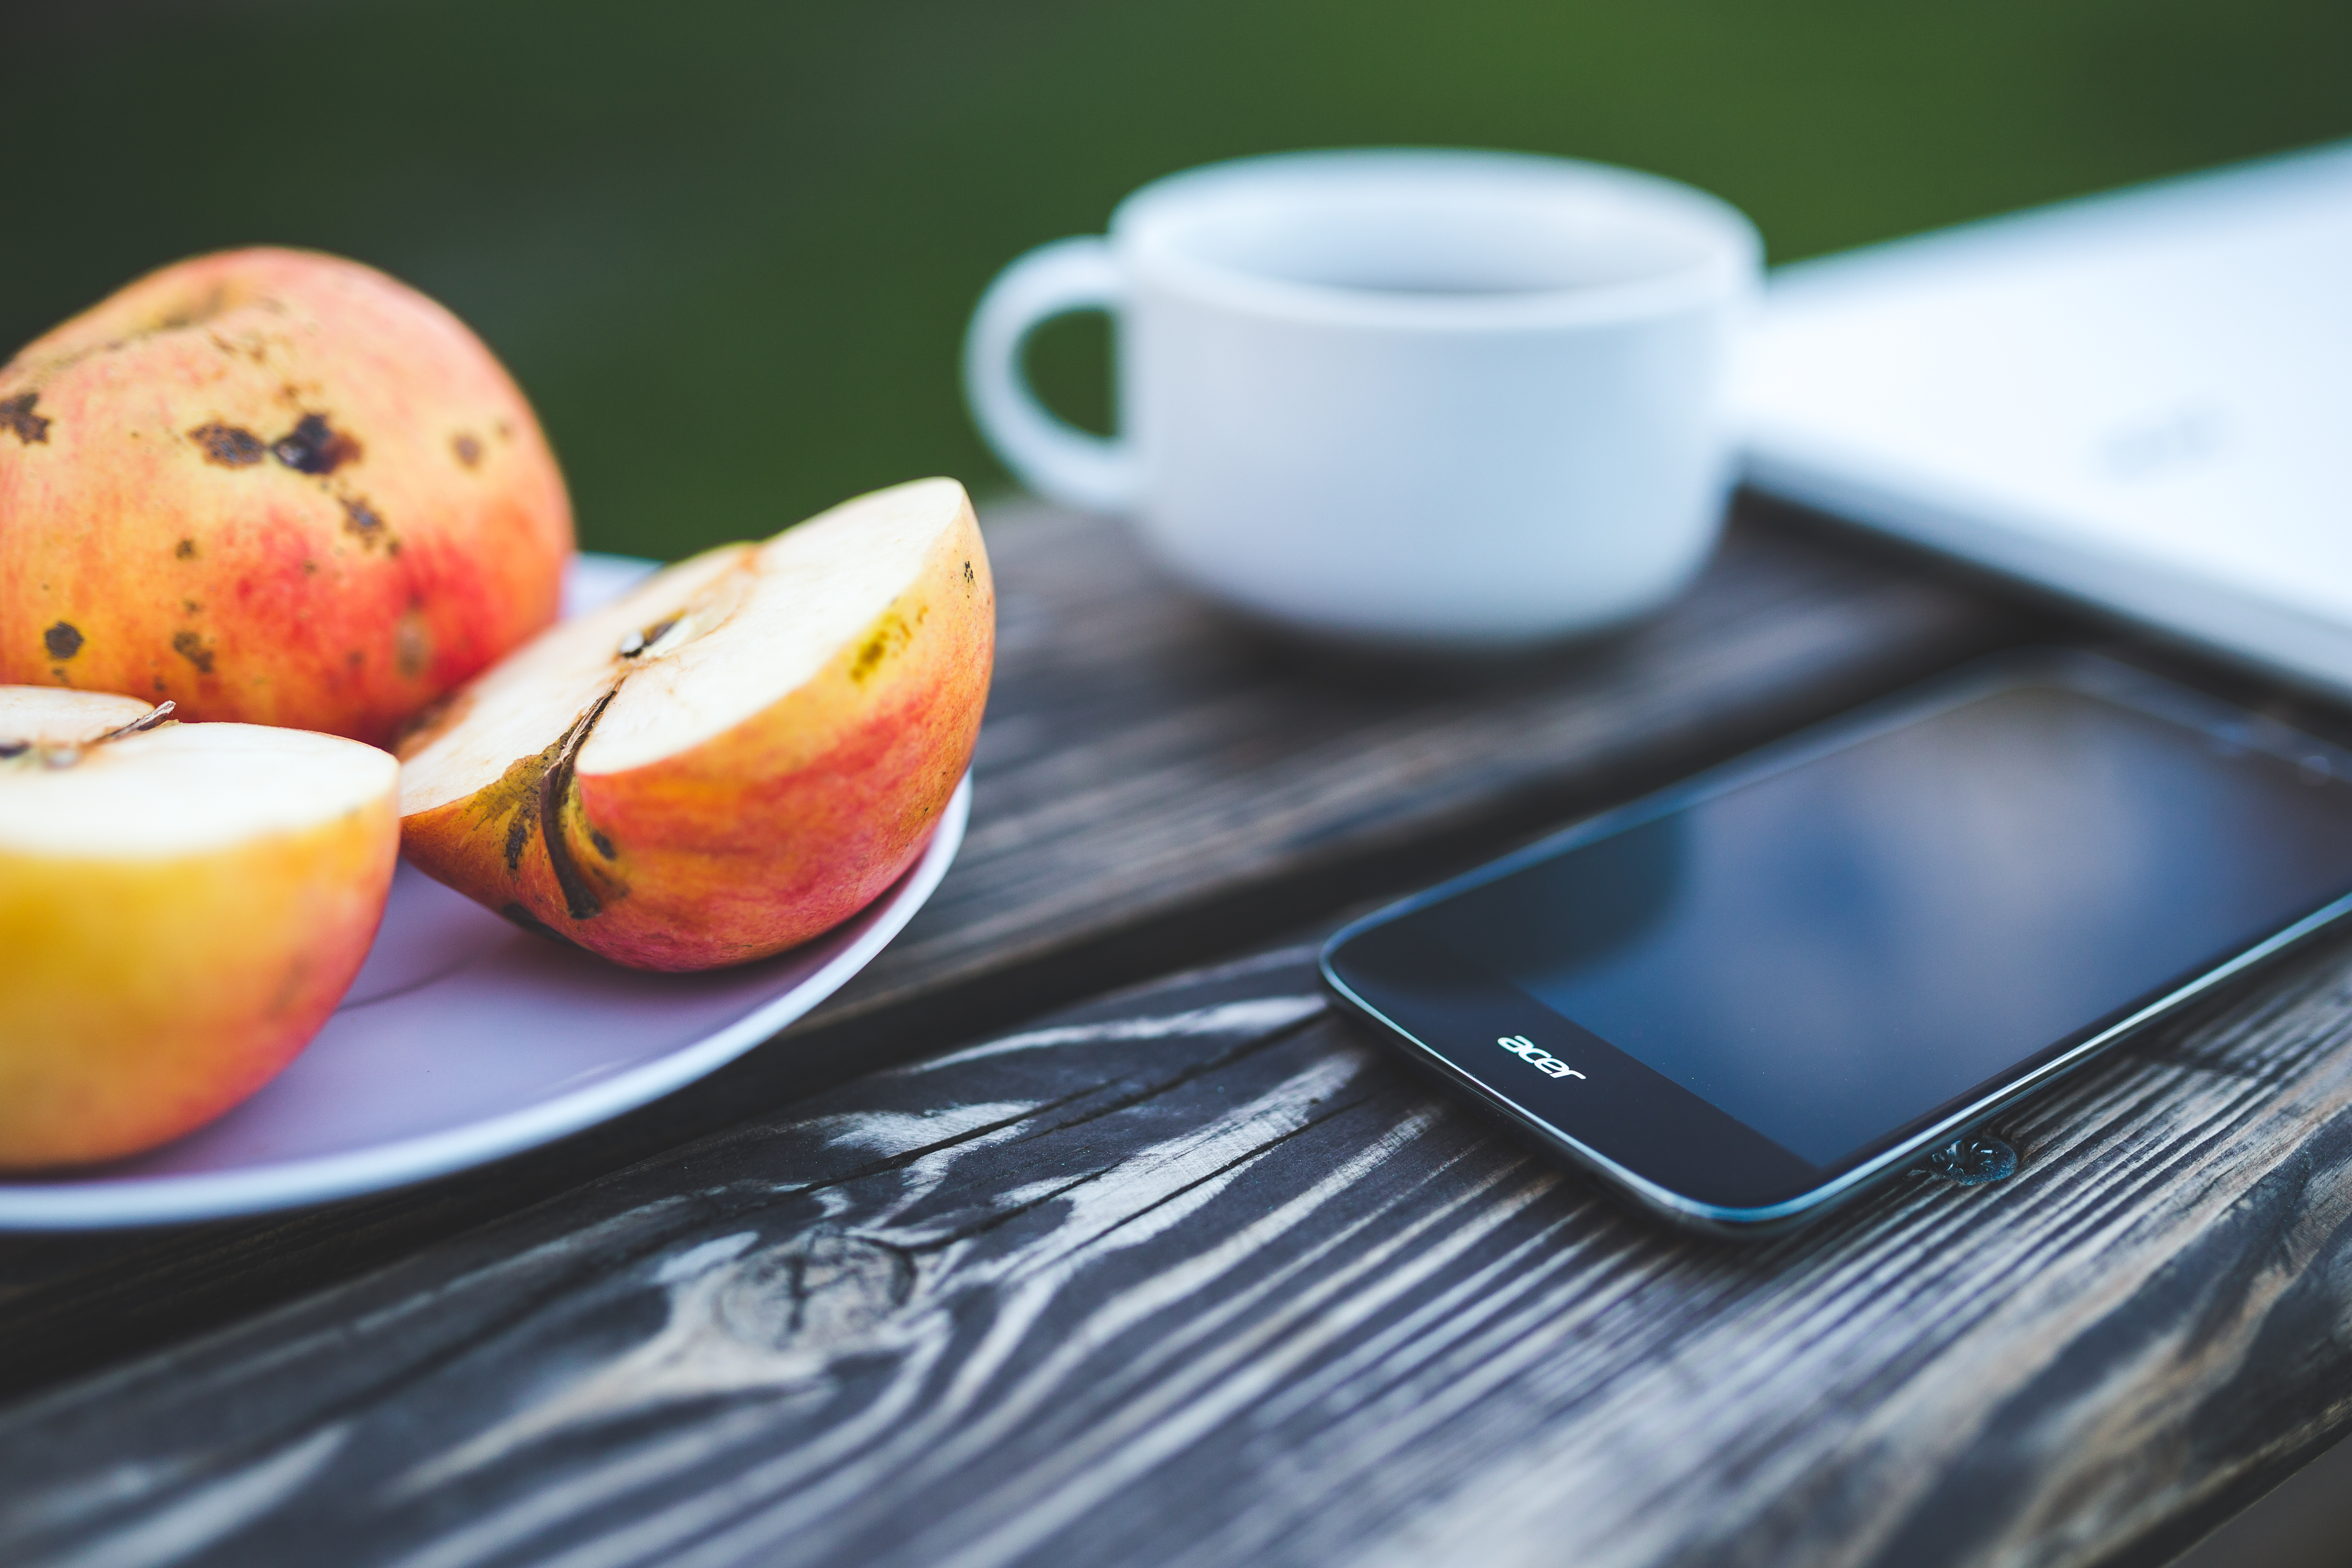 Mobile phone apple coffee on the wooden table · Free Stock